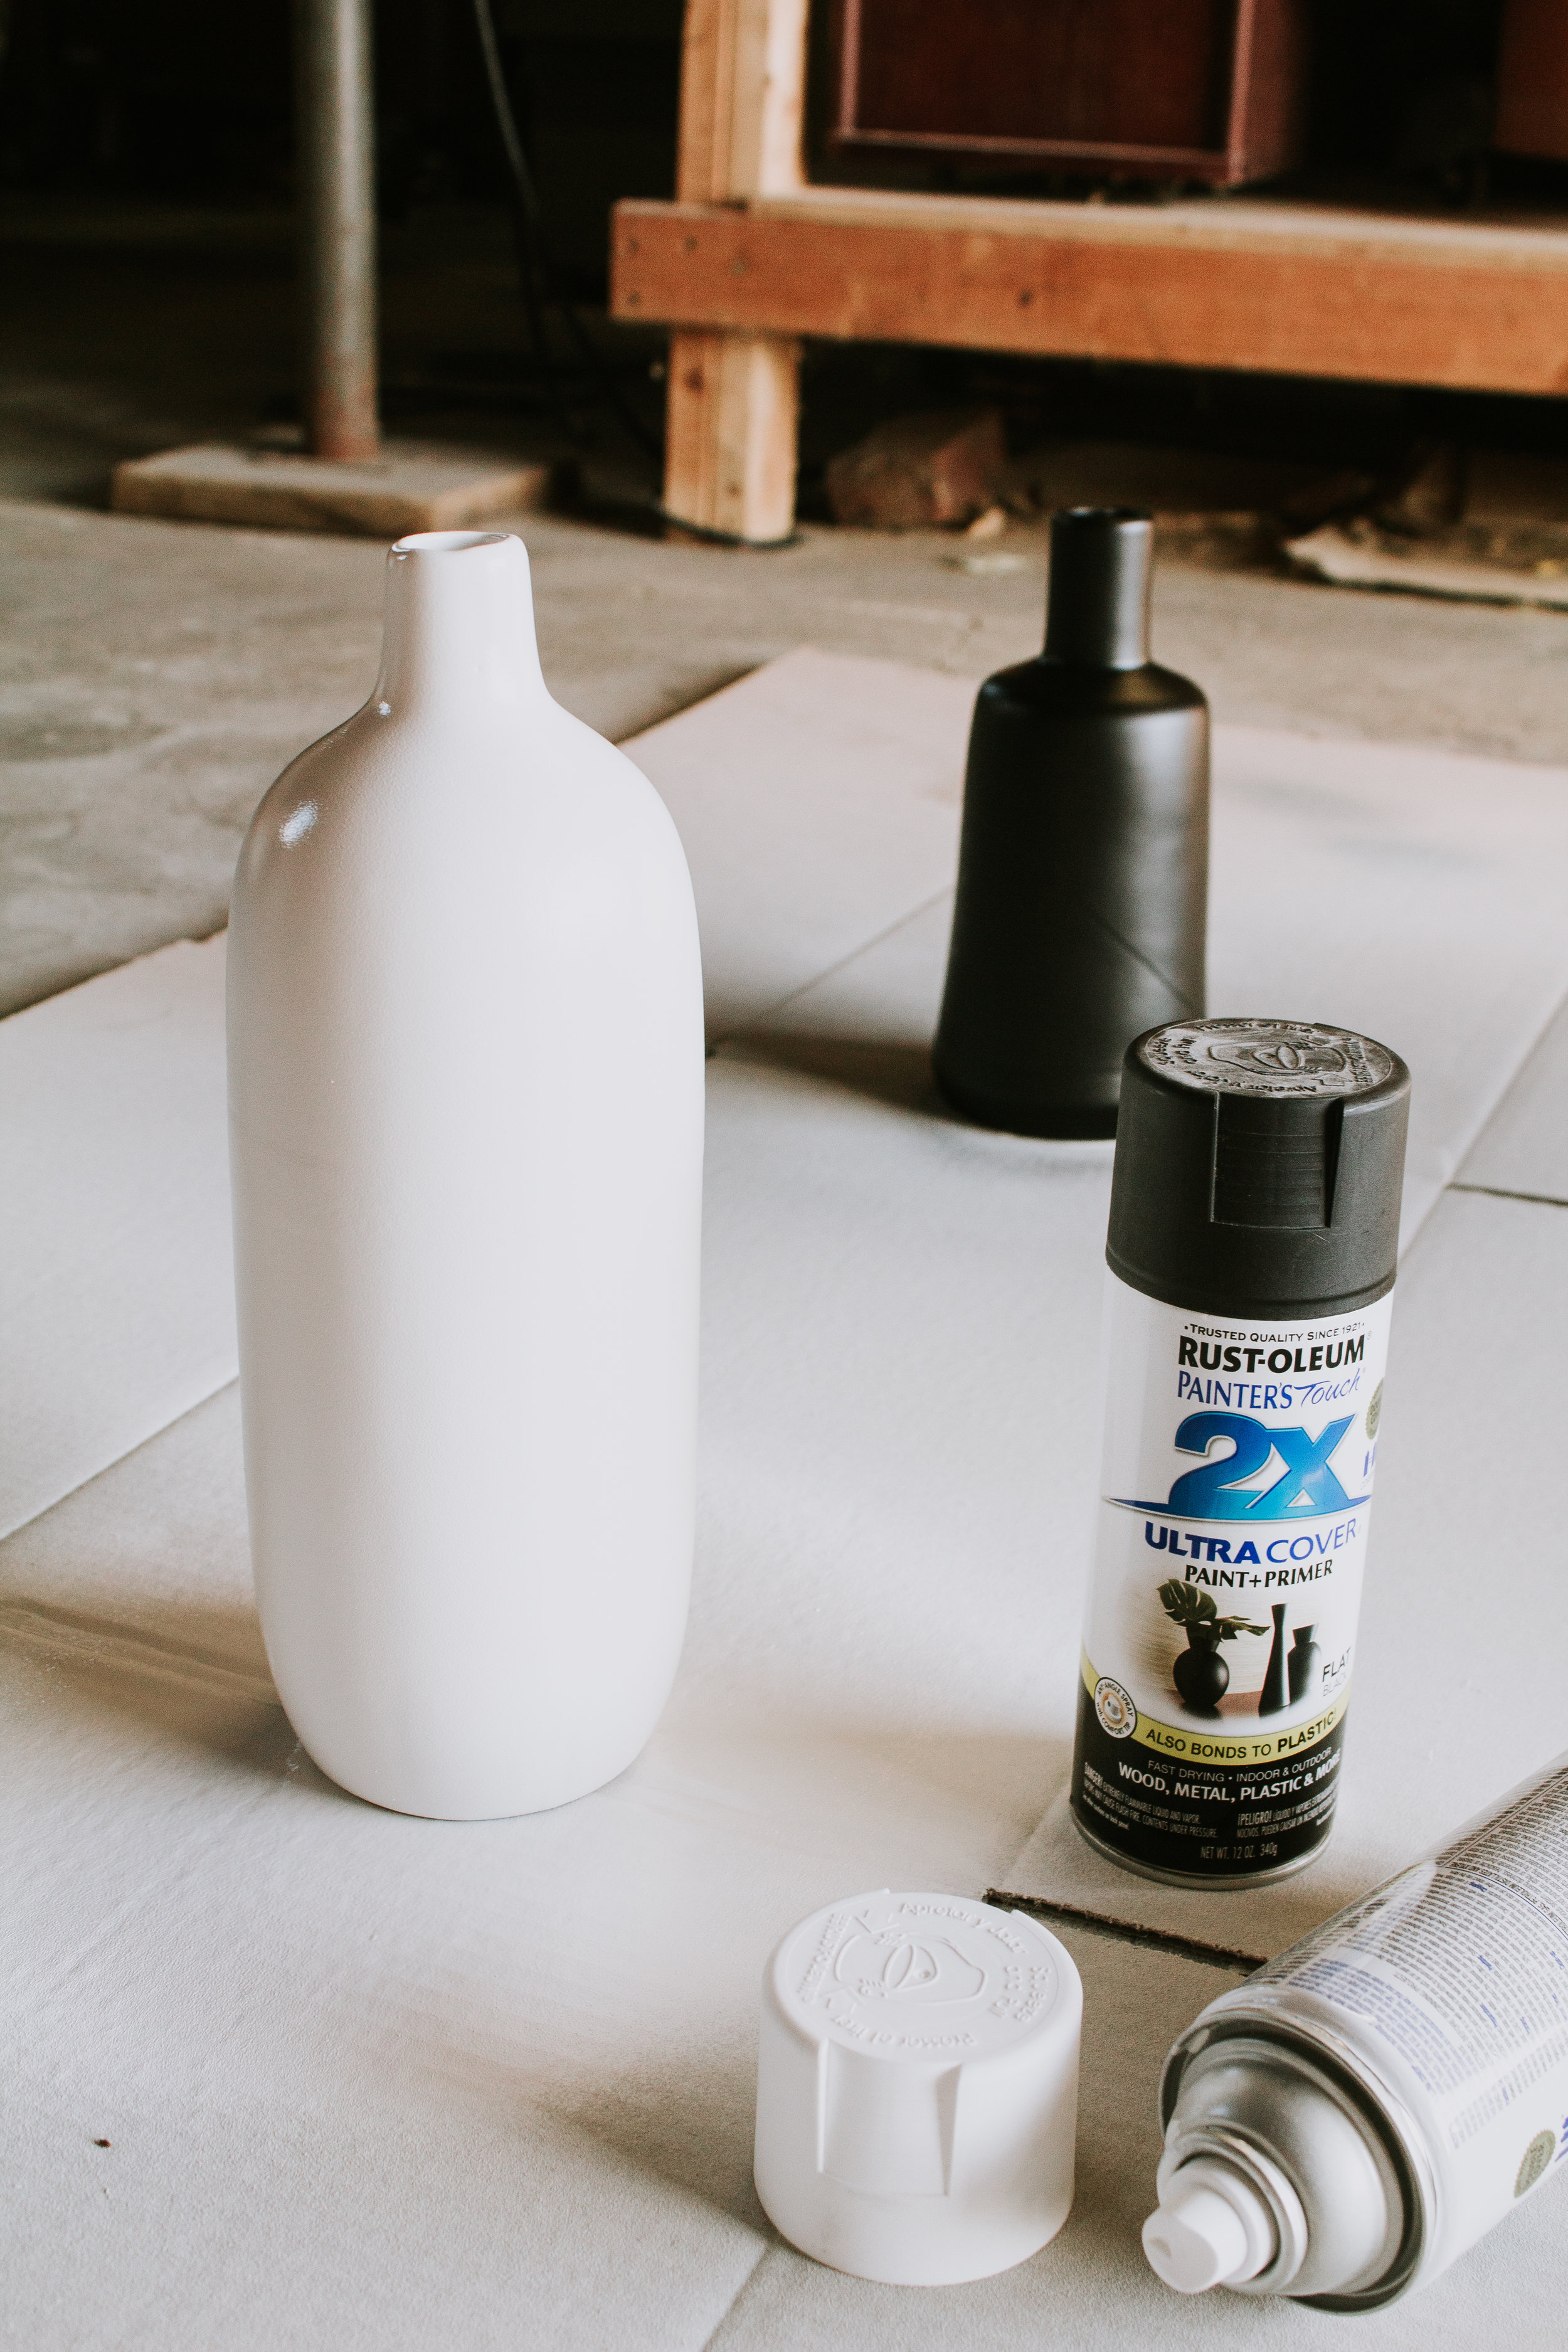 How to give your outdated vases a face-lift - how to update your old vases. Paint your vase to give it new life. Step by step tutorial on DIY painted vases from Goodwill. Rustoleum paint